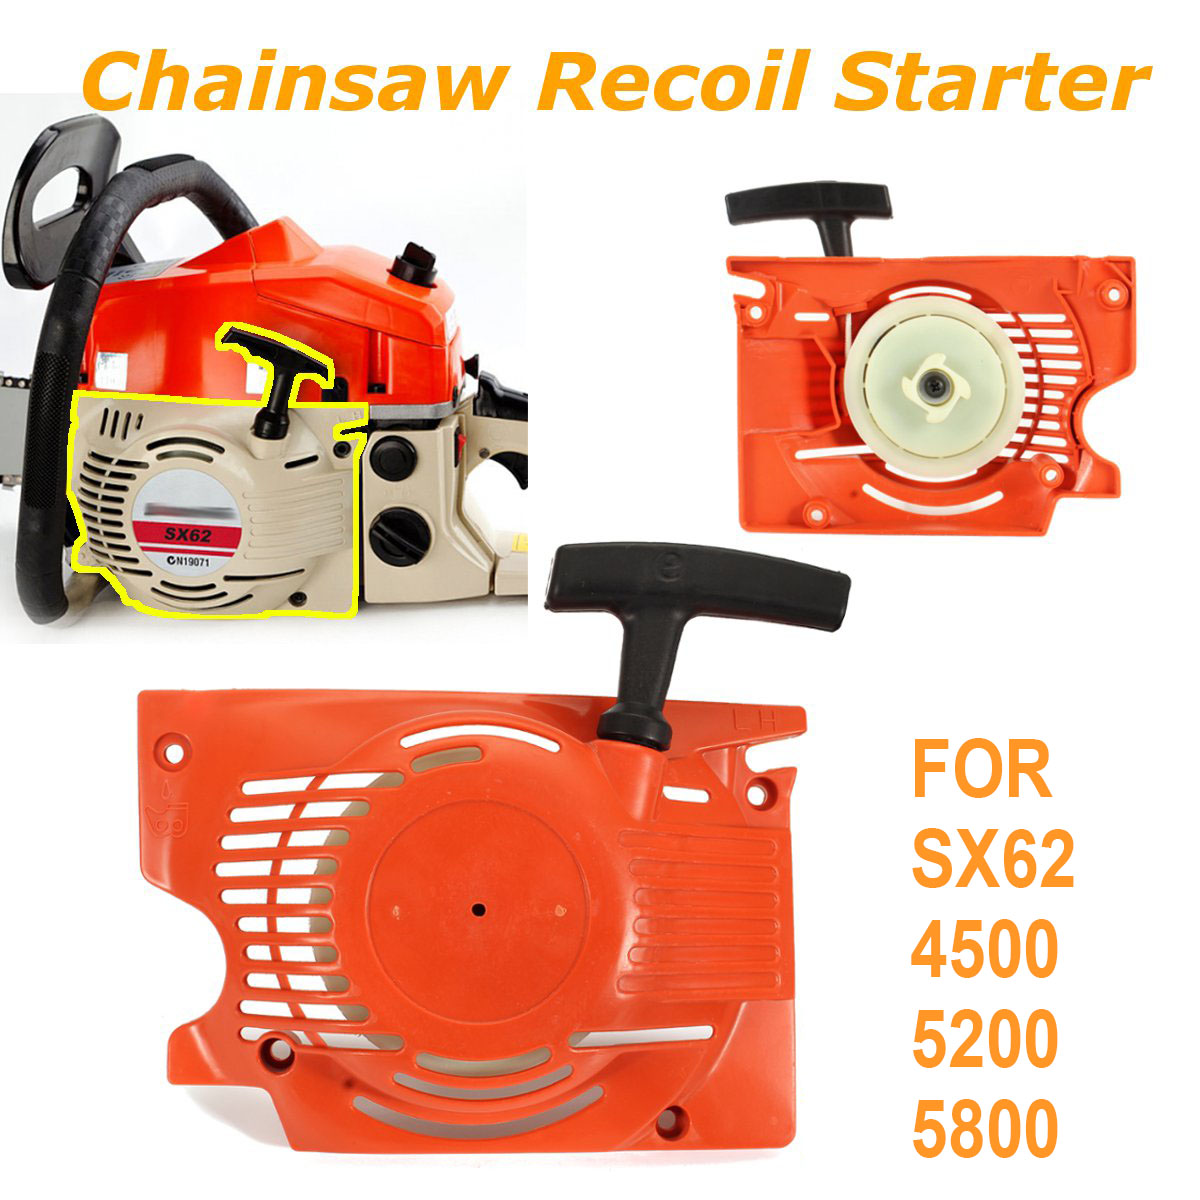 Recoil Starter For Chinese Chainsaw 4500 5200 45cc Tarus TOPSUN Timbertech